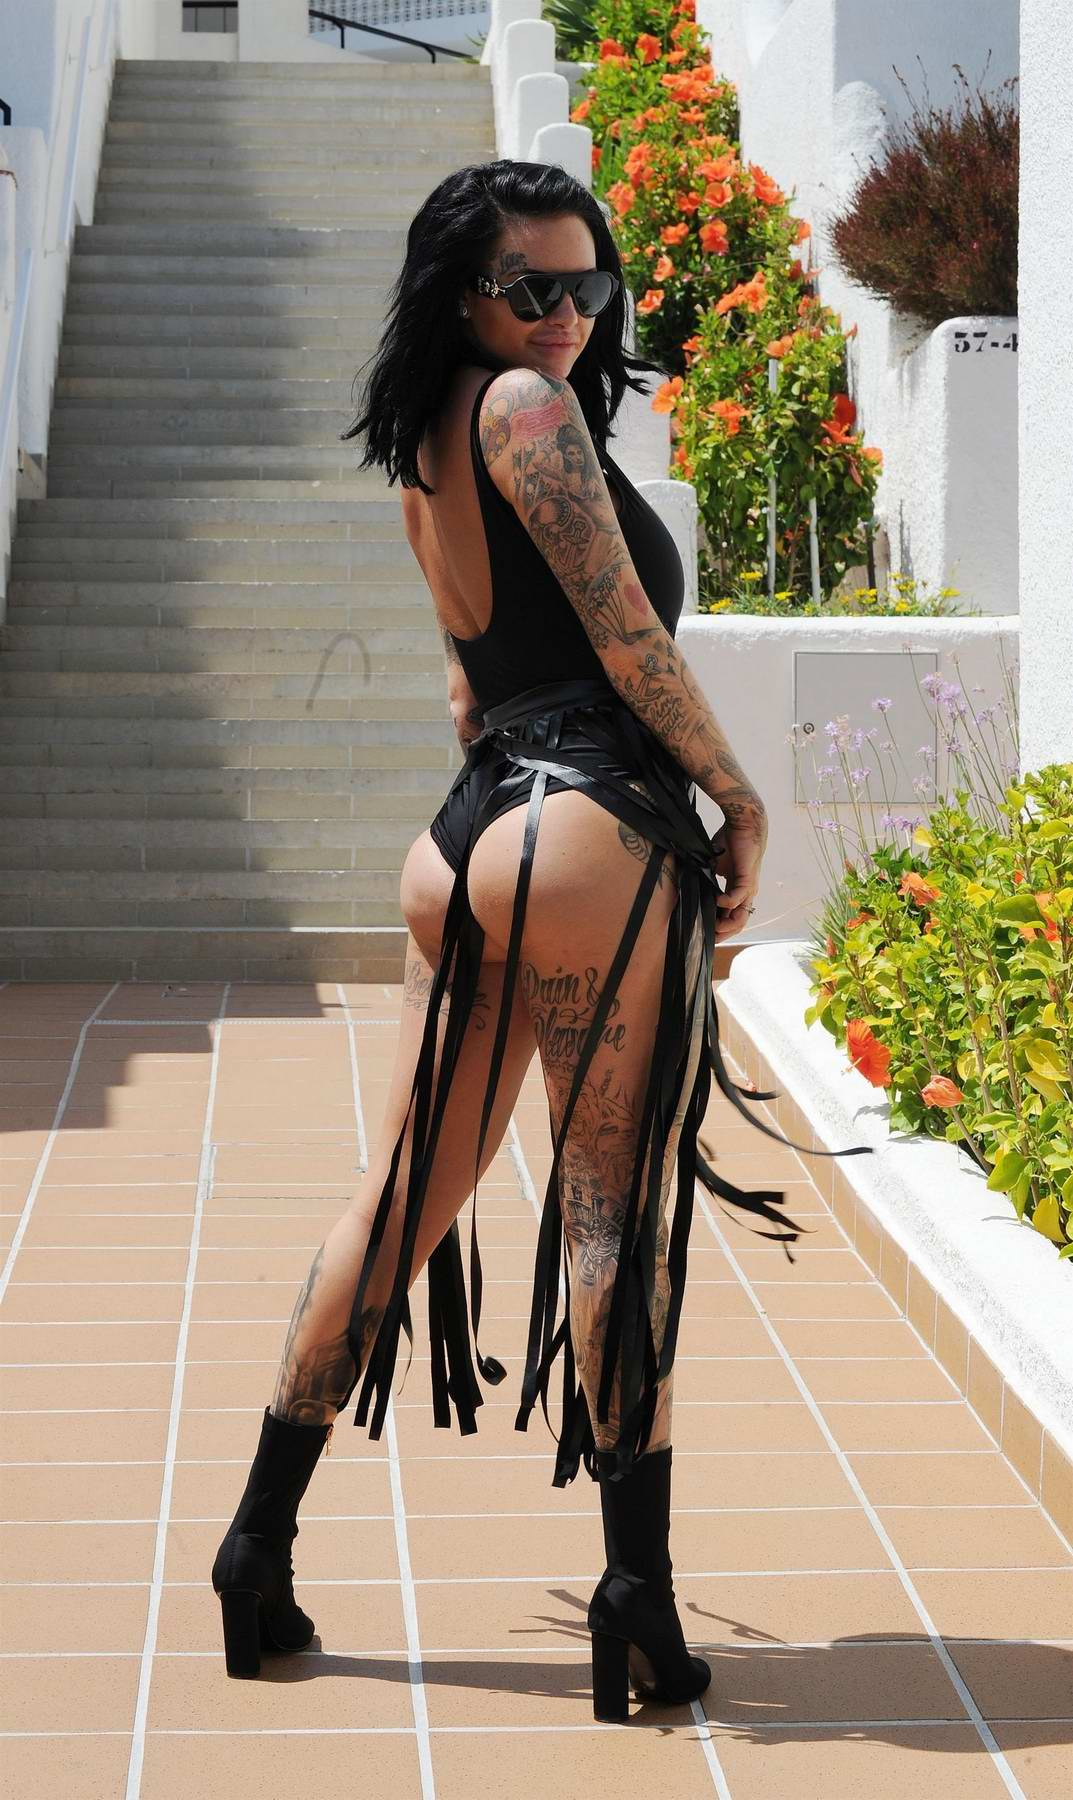 Jemma Lucy in a tasseled swimsuit at a pool party in Spain